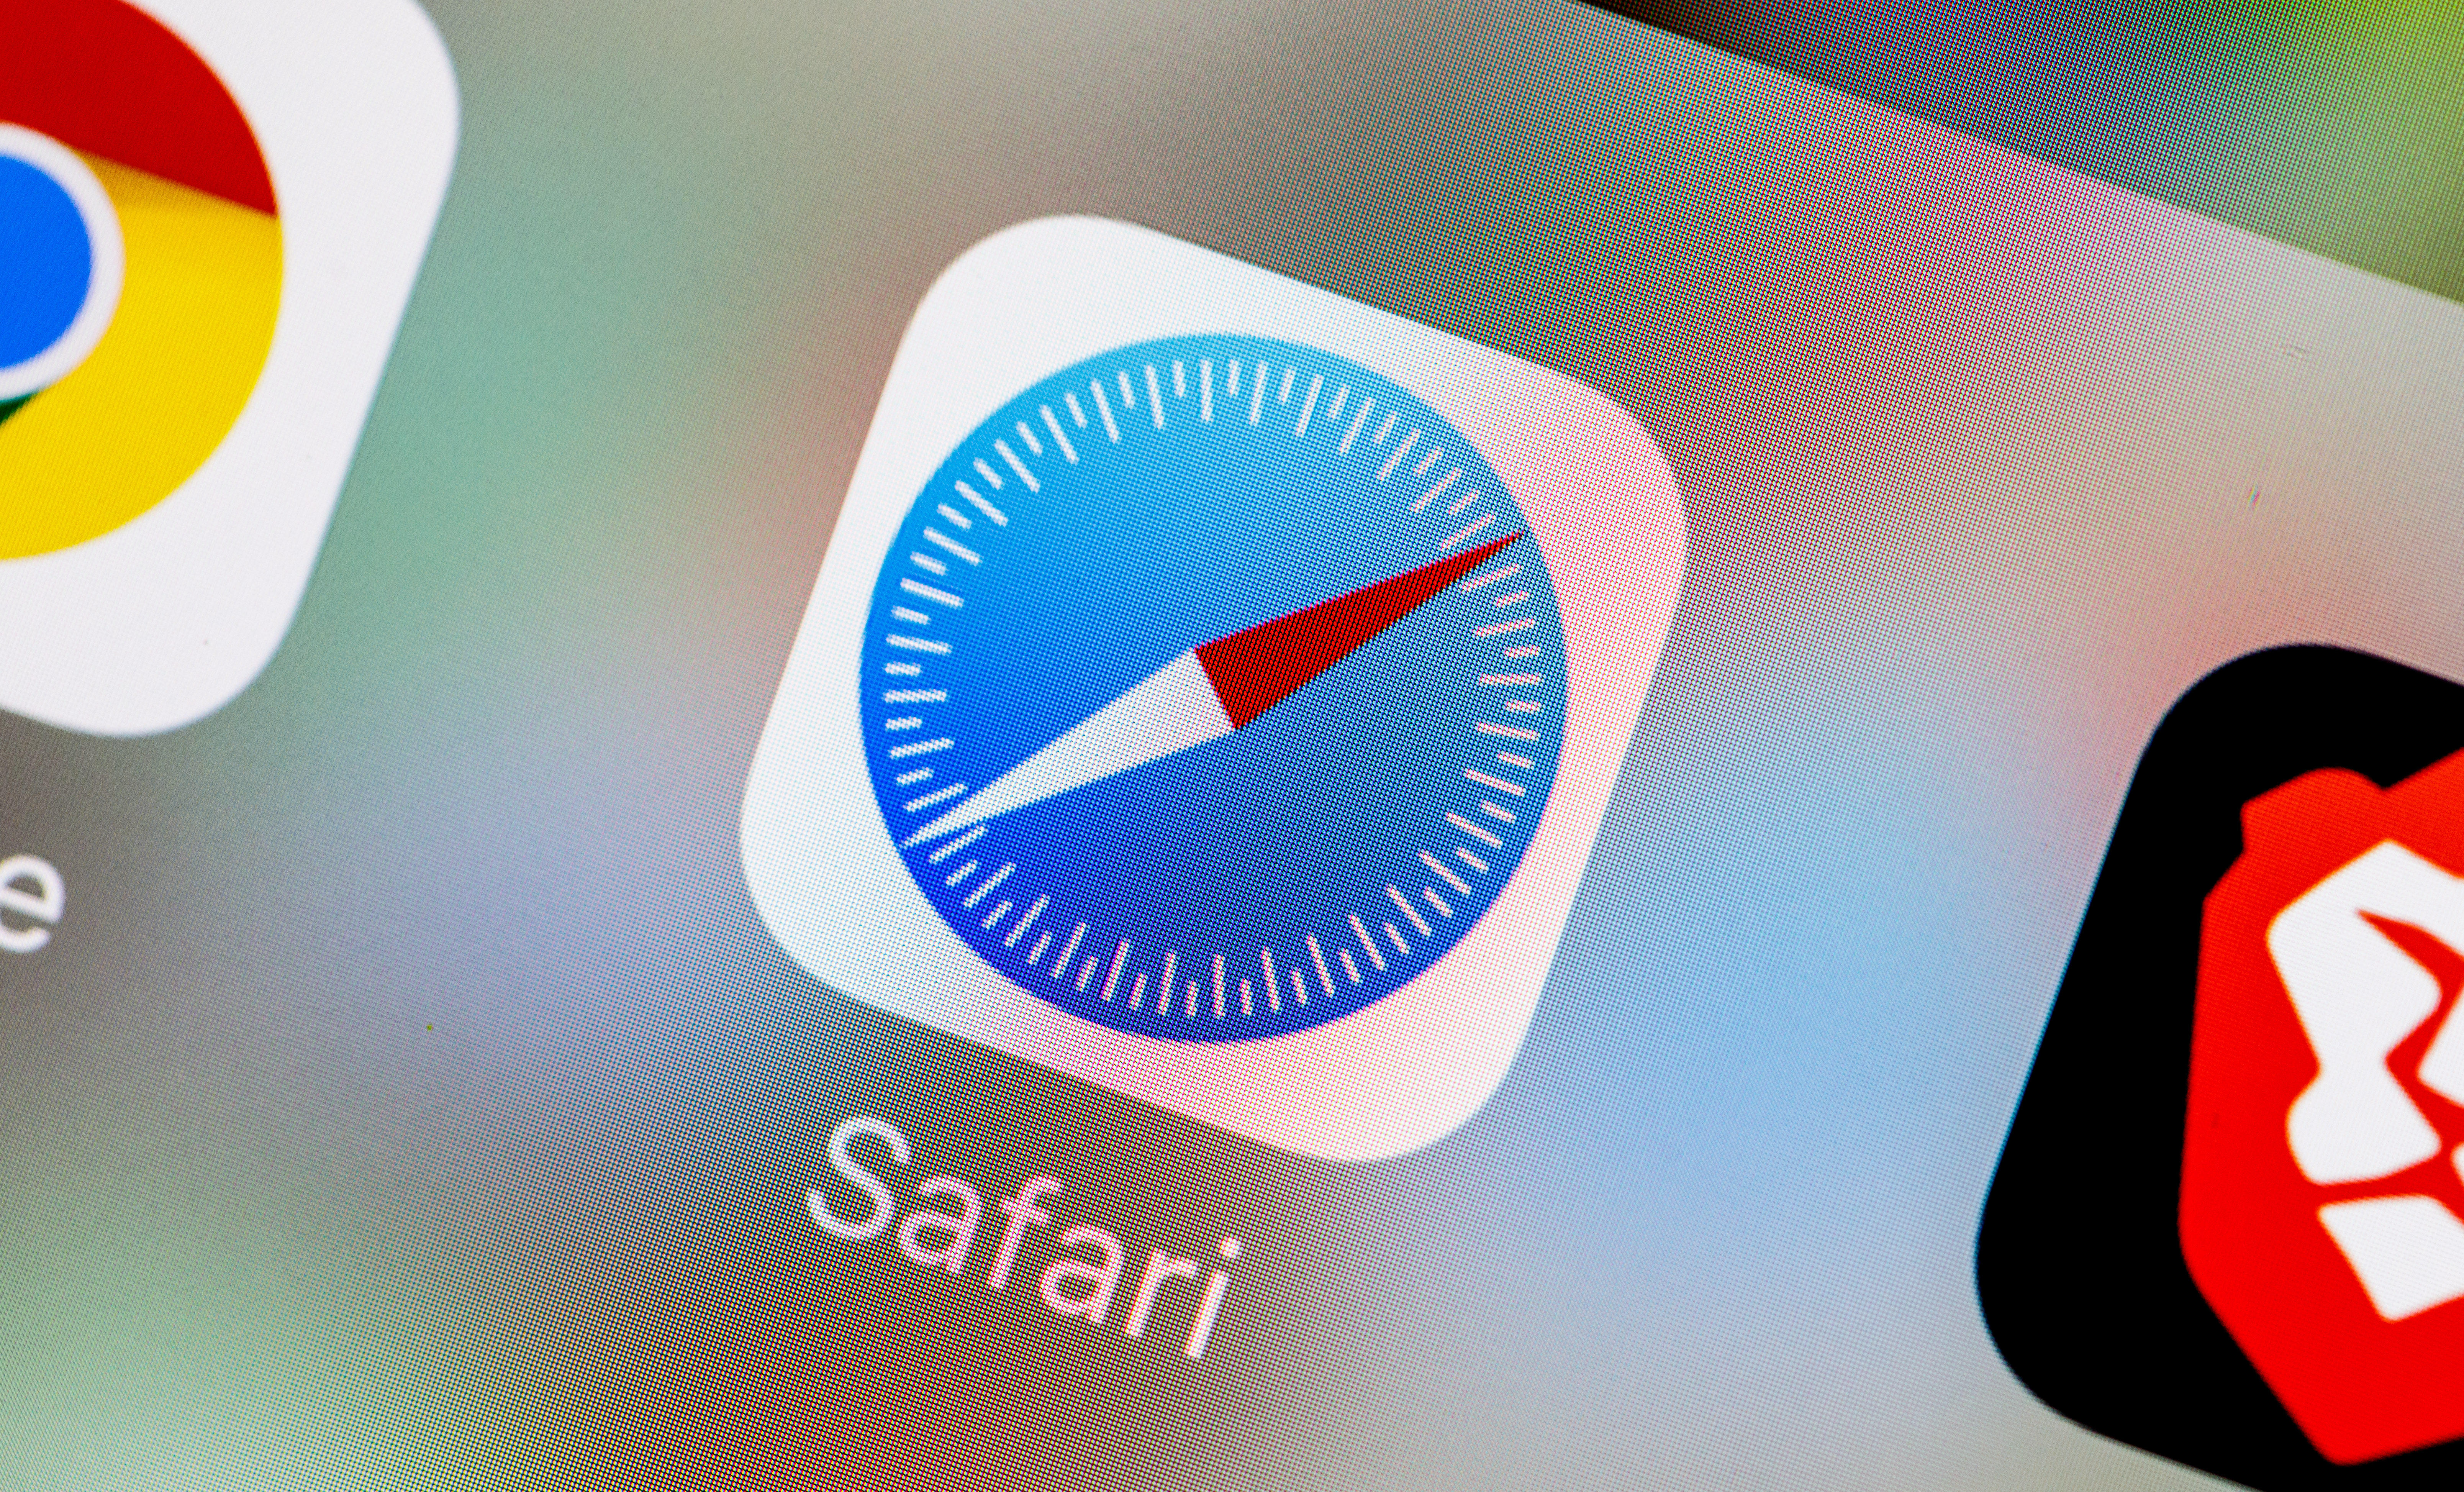 Apple's Safari icon on an iPhone screen